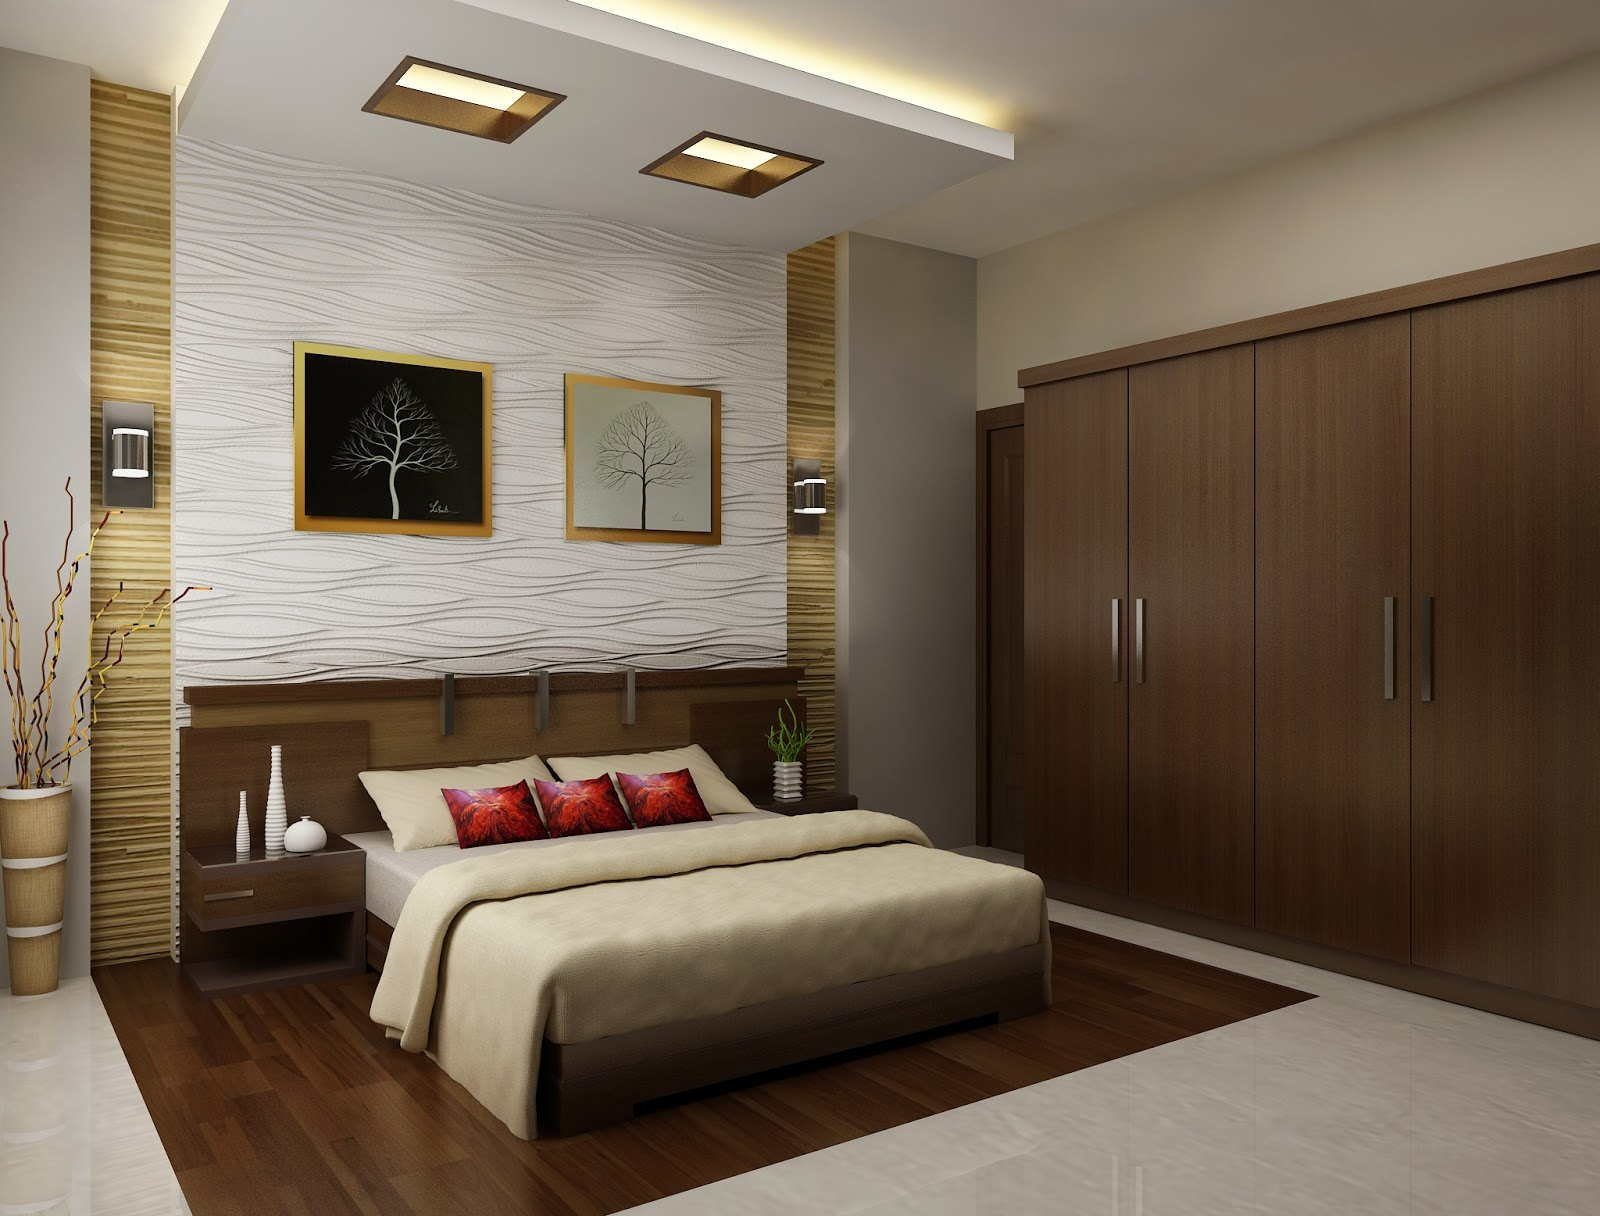 Best 11 Attractive Bedroom Design Ideas That Will Make Your With Pictures